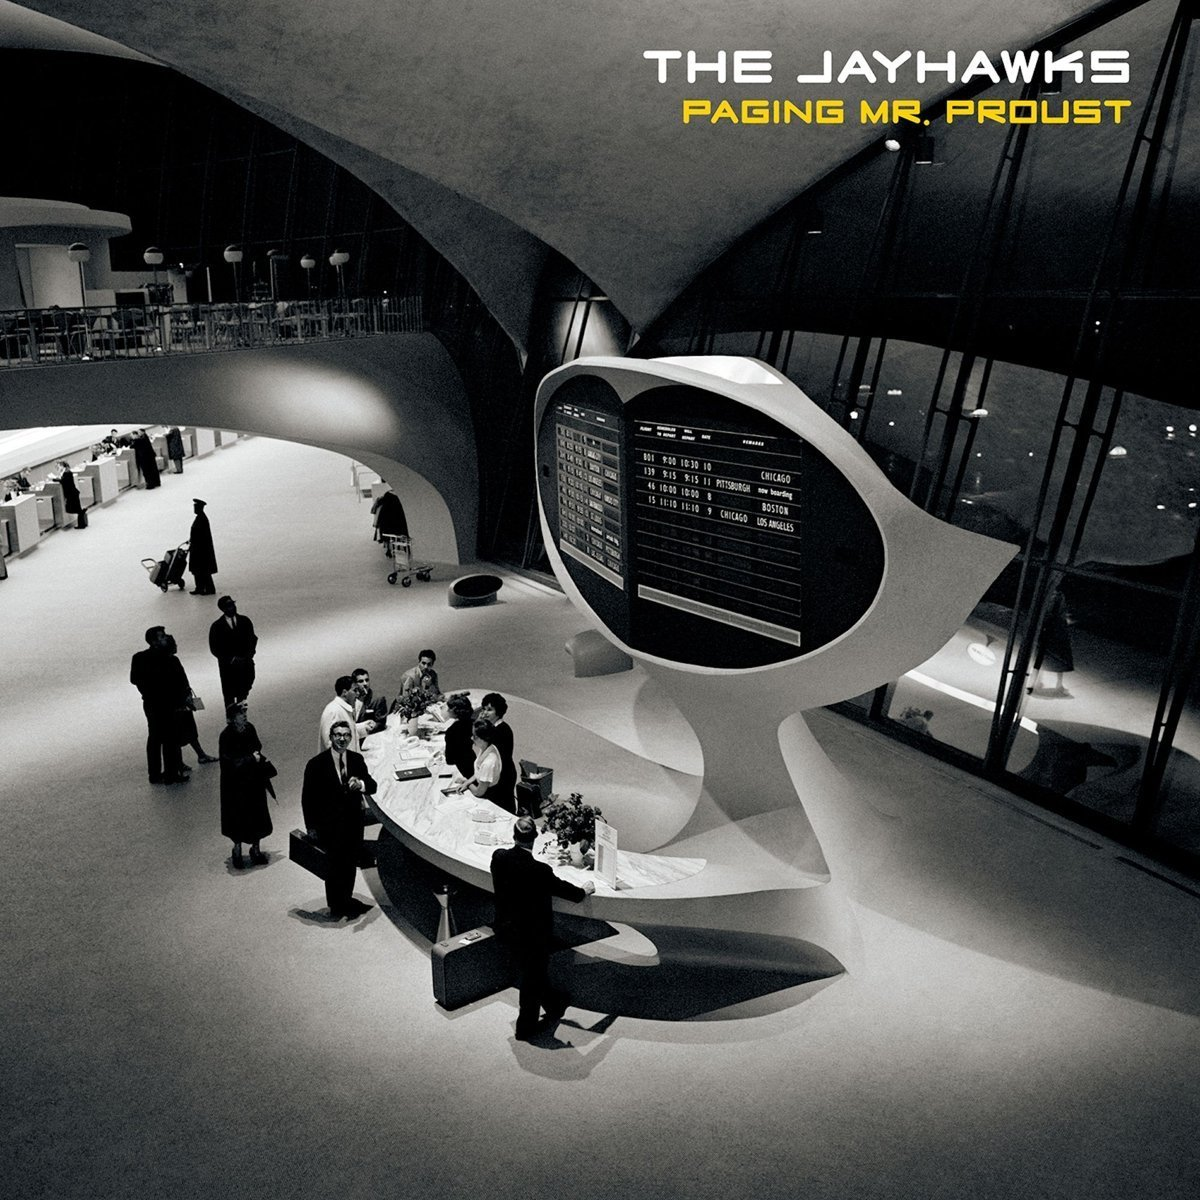 The Jayhawks: Paging Mr. Proust [Album Review]